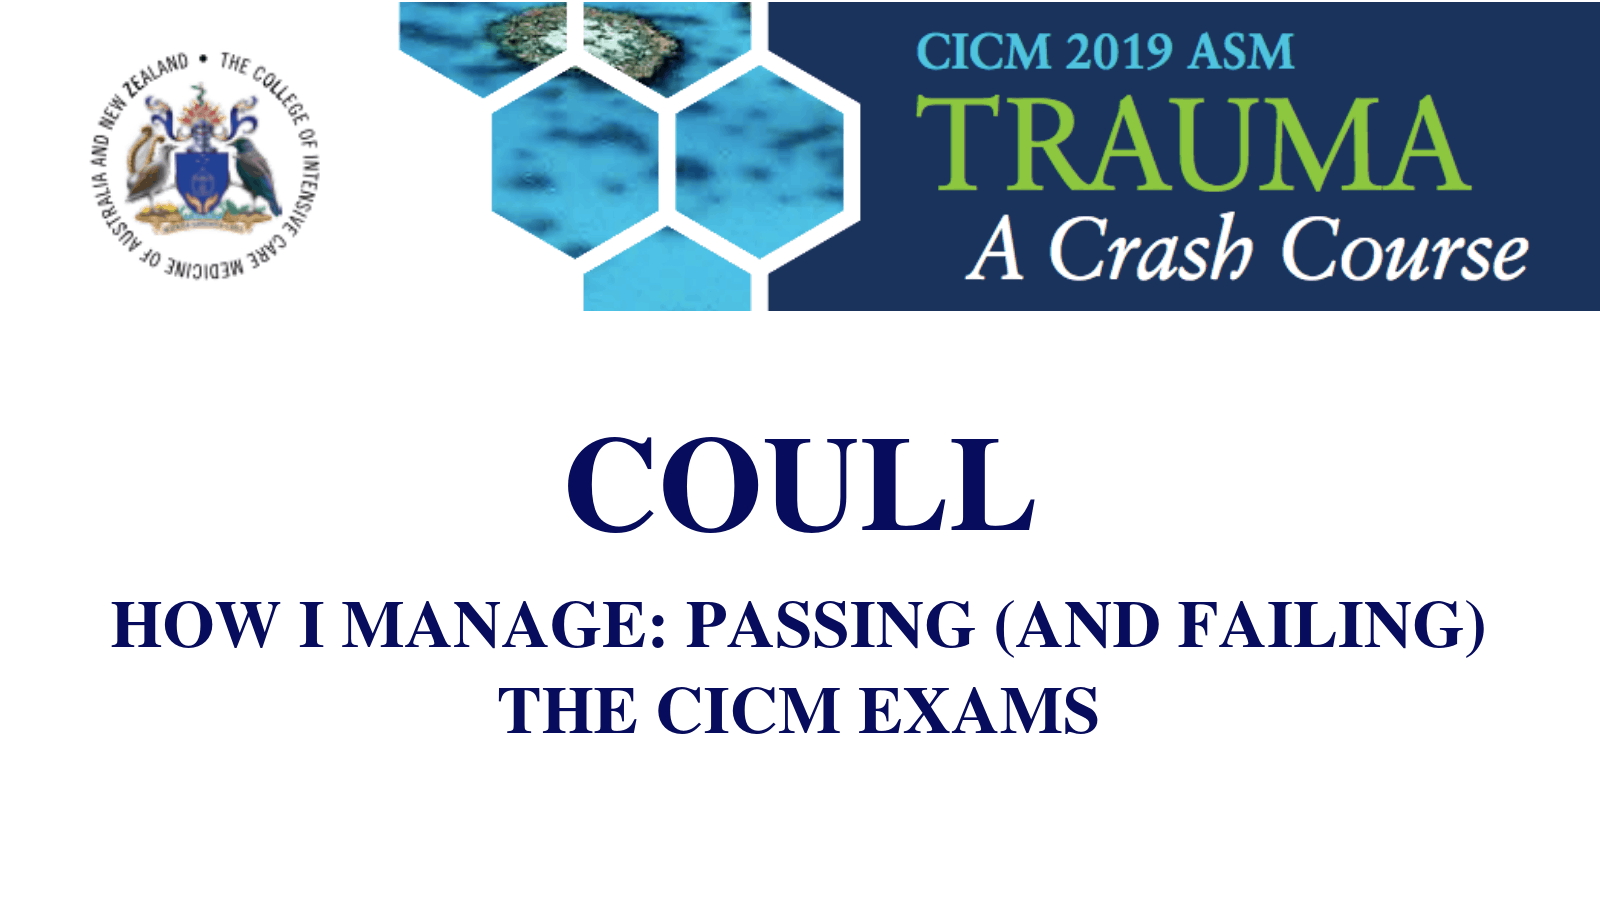 How I manage: Passing (and failing) the CICM exams.